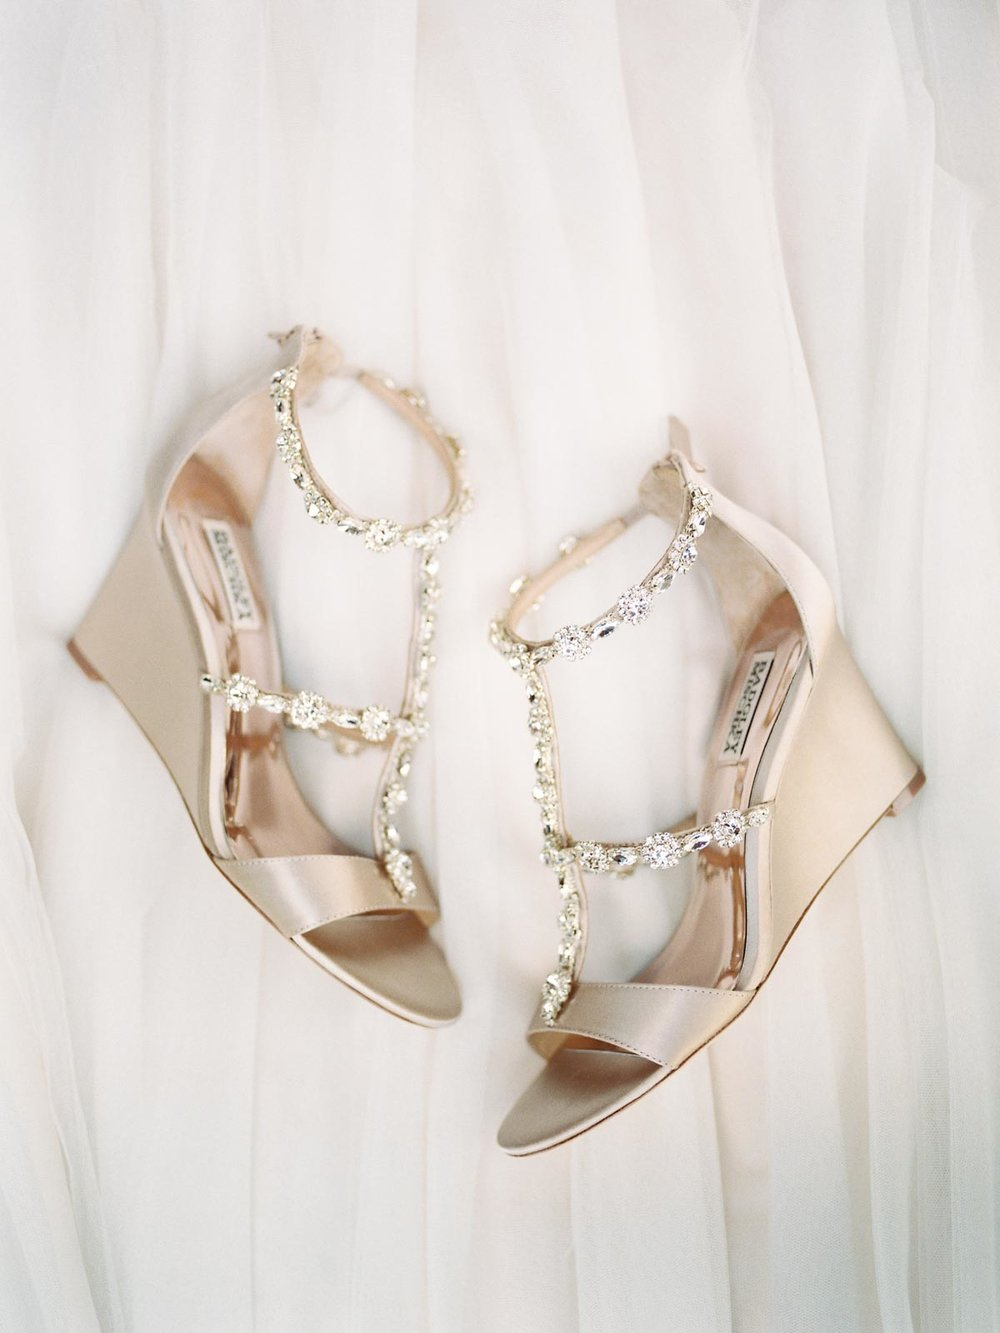 beautiful sparkly wedding day shoes by Mishcka Badgley